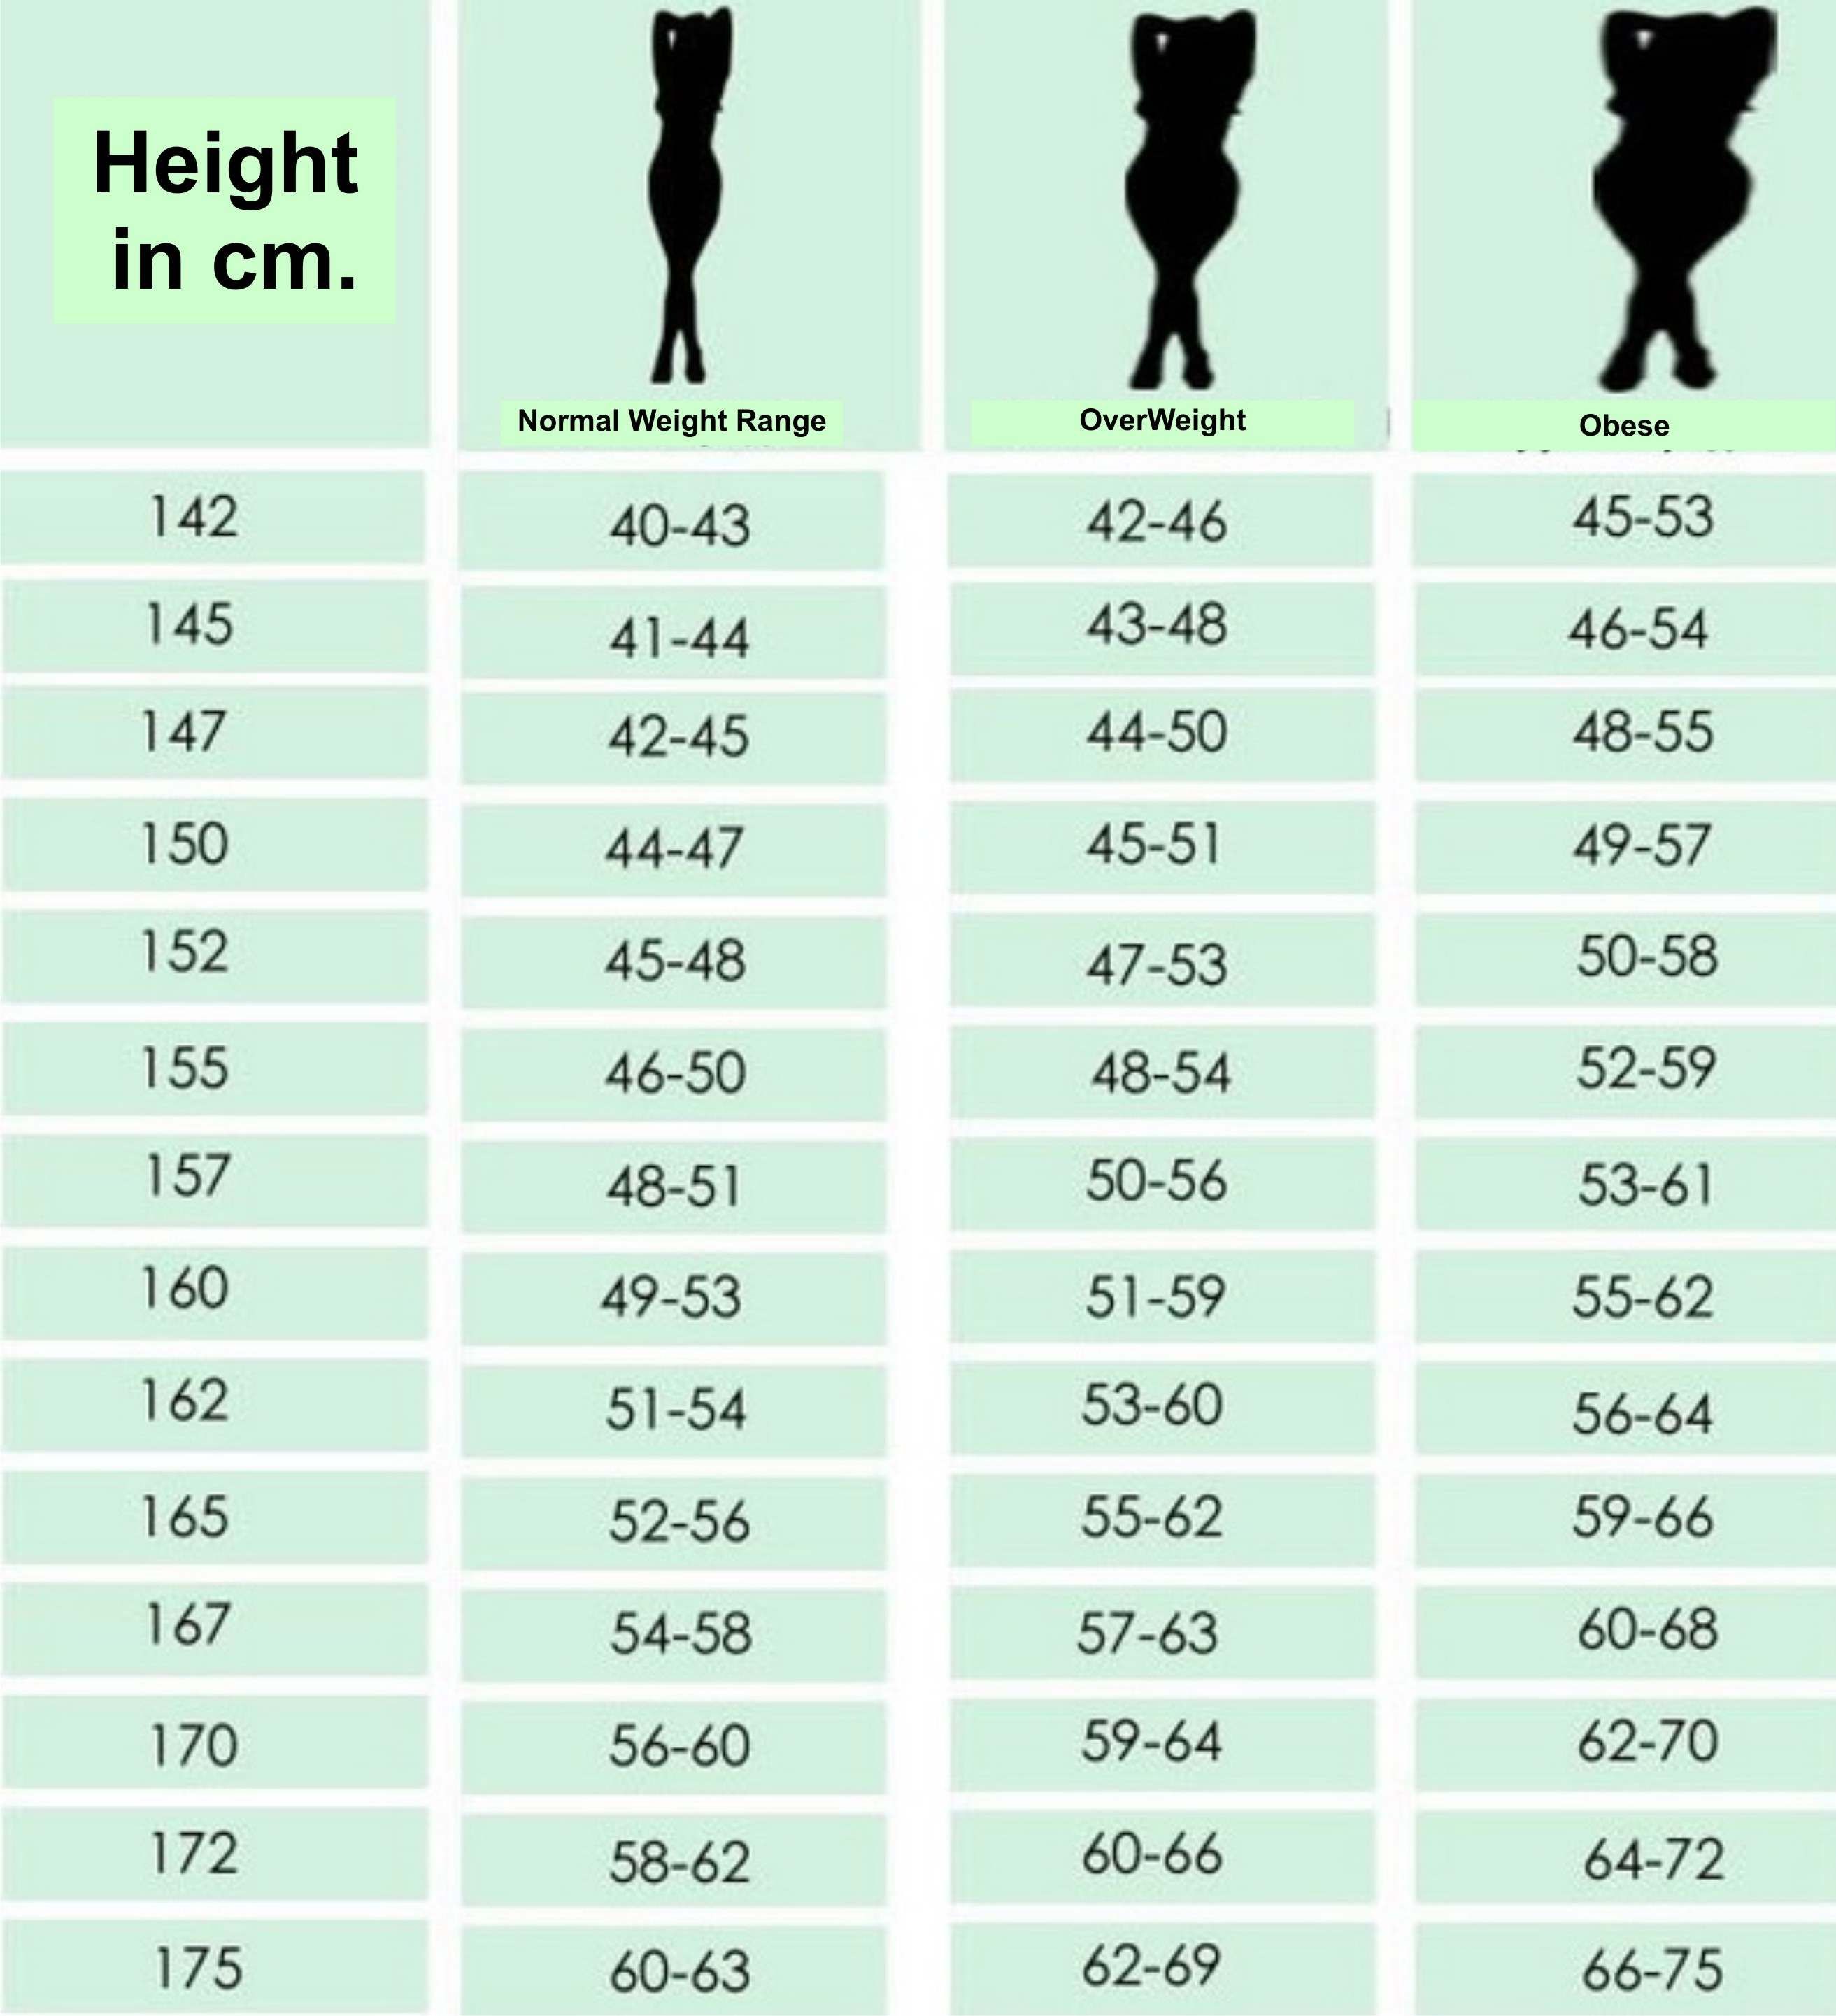 Conversion Libras A Kg Chart For Women According To Height What Is Your Ideal